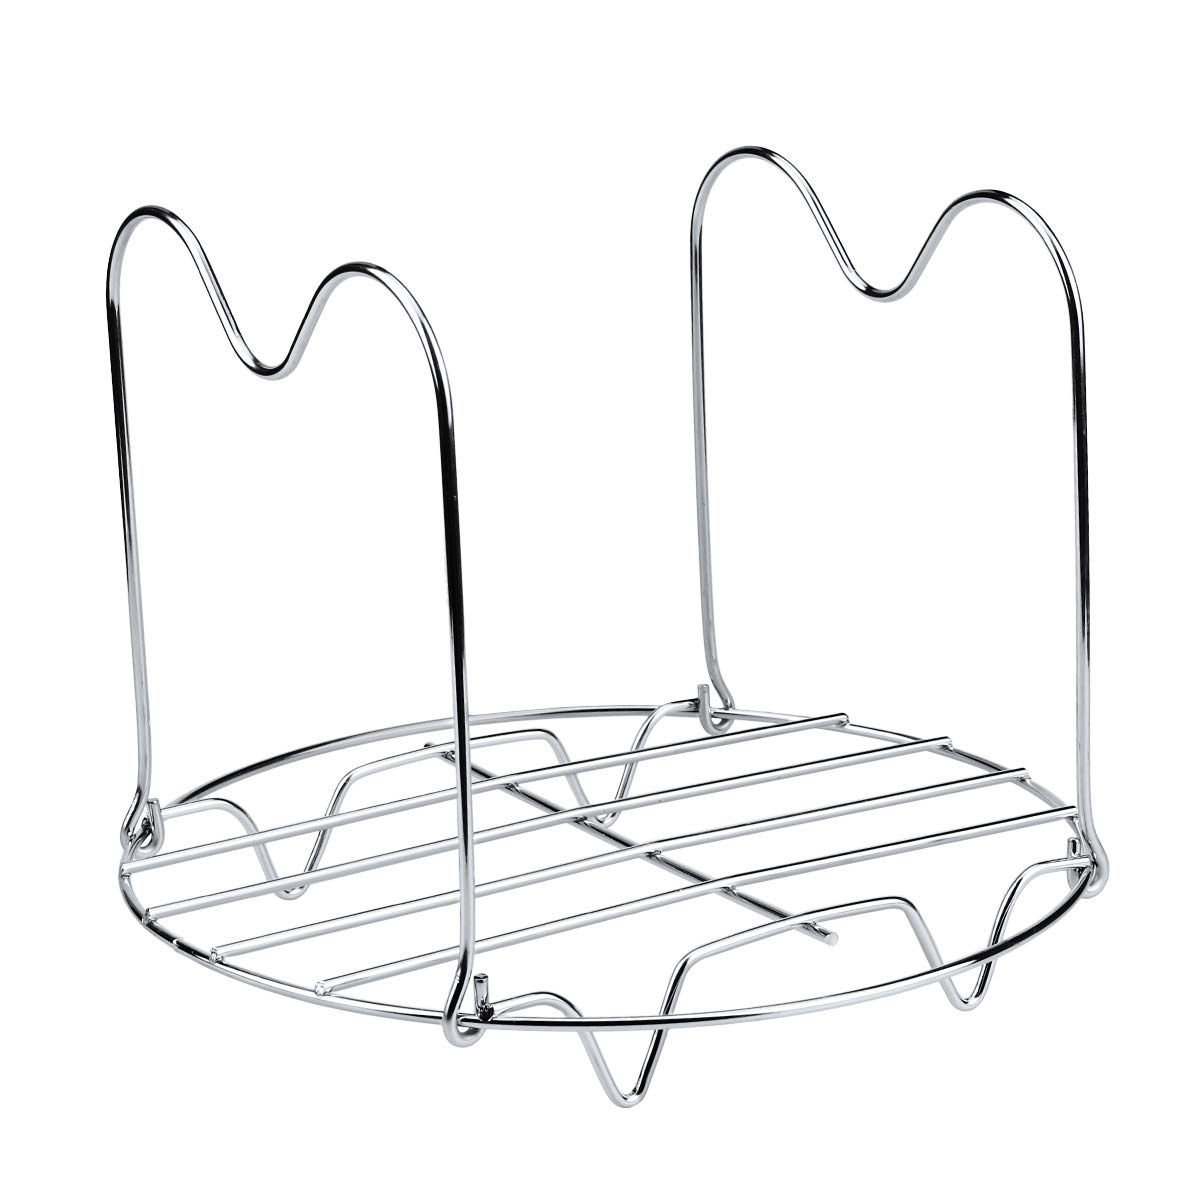 Aiduy Steamer Rack Trivet with Long Handles Compatible with Instant Pot 6 or 8 Quart Pressure Cooker, Stainless Steel Steam Rack Stand Metal Trivet for Easy Pot Removal by Aiduy (Image #2)